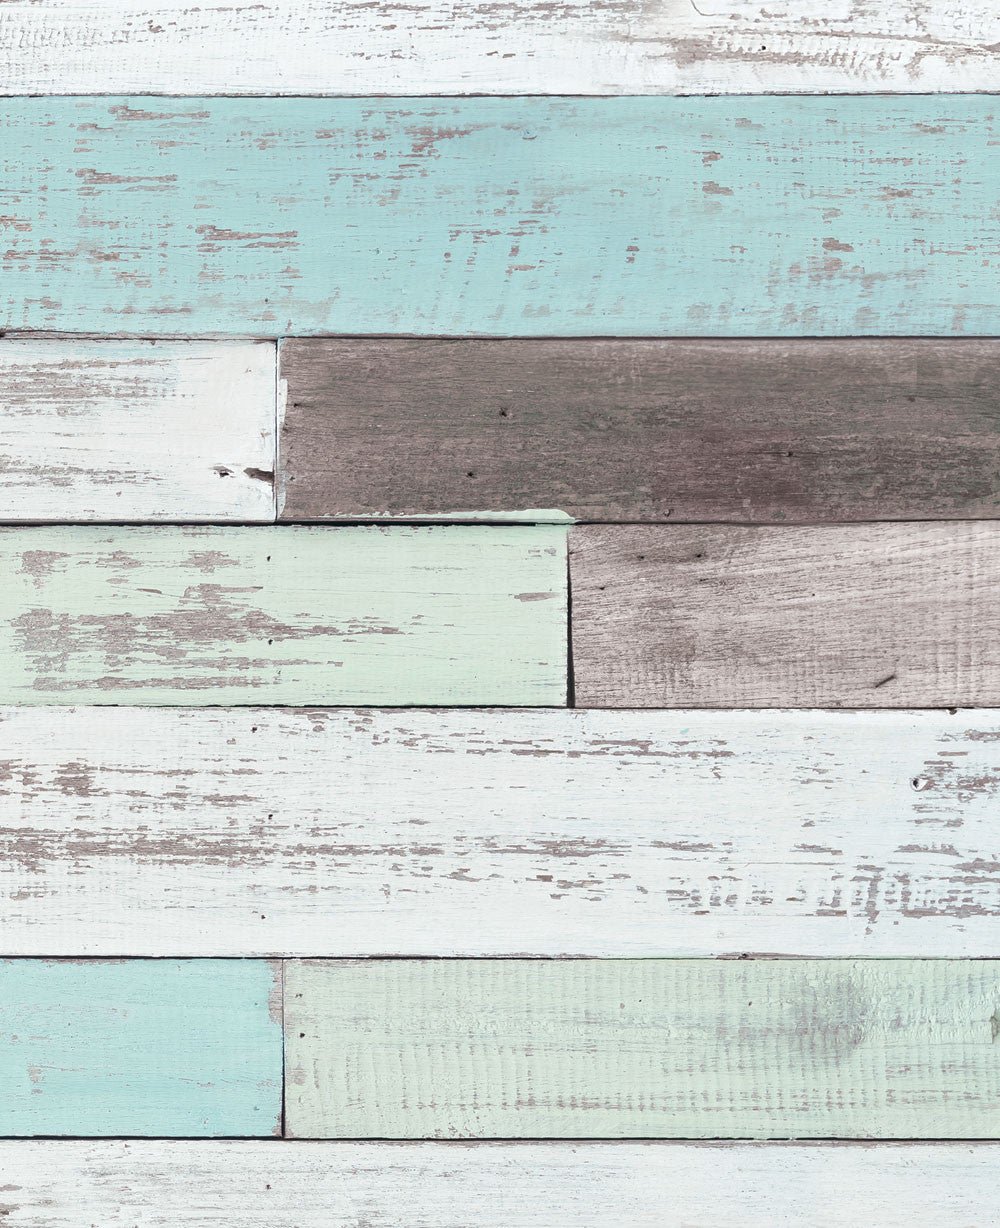 Reclaimed Painted Beach Wood Mural Wall Art Wallpaper - Peel and Stick  sc 1 st  Simple Shapes & Reclaimed Painted Beach Wood Mural Wall Art Wallpaper - Peel and ...